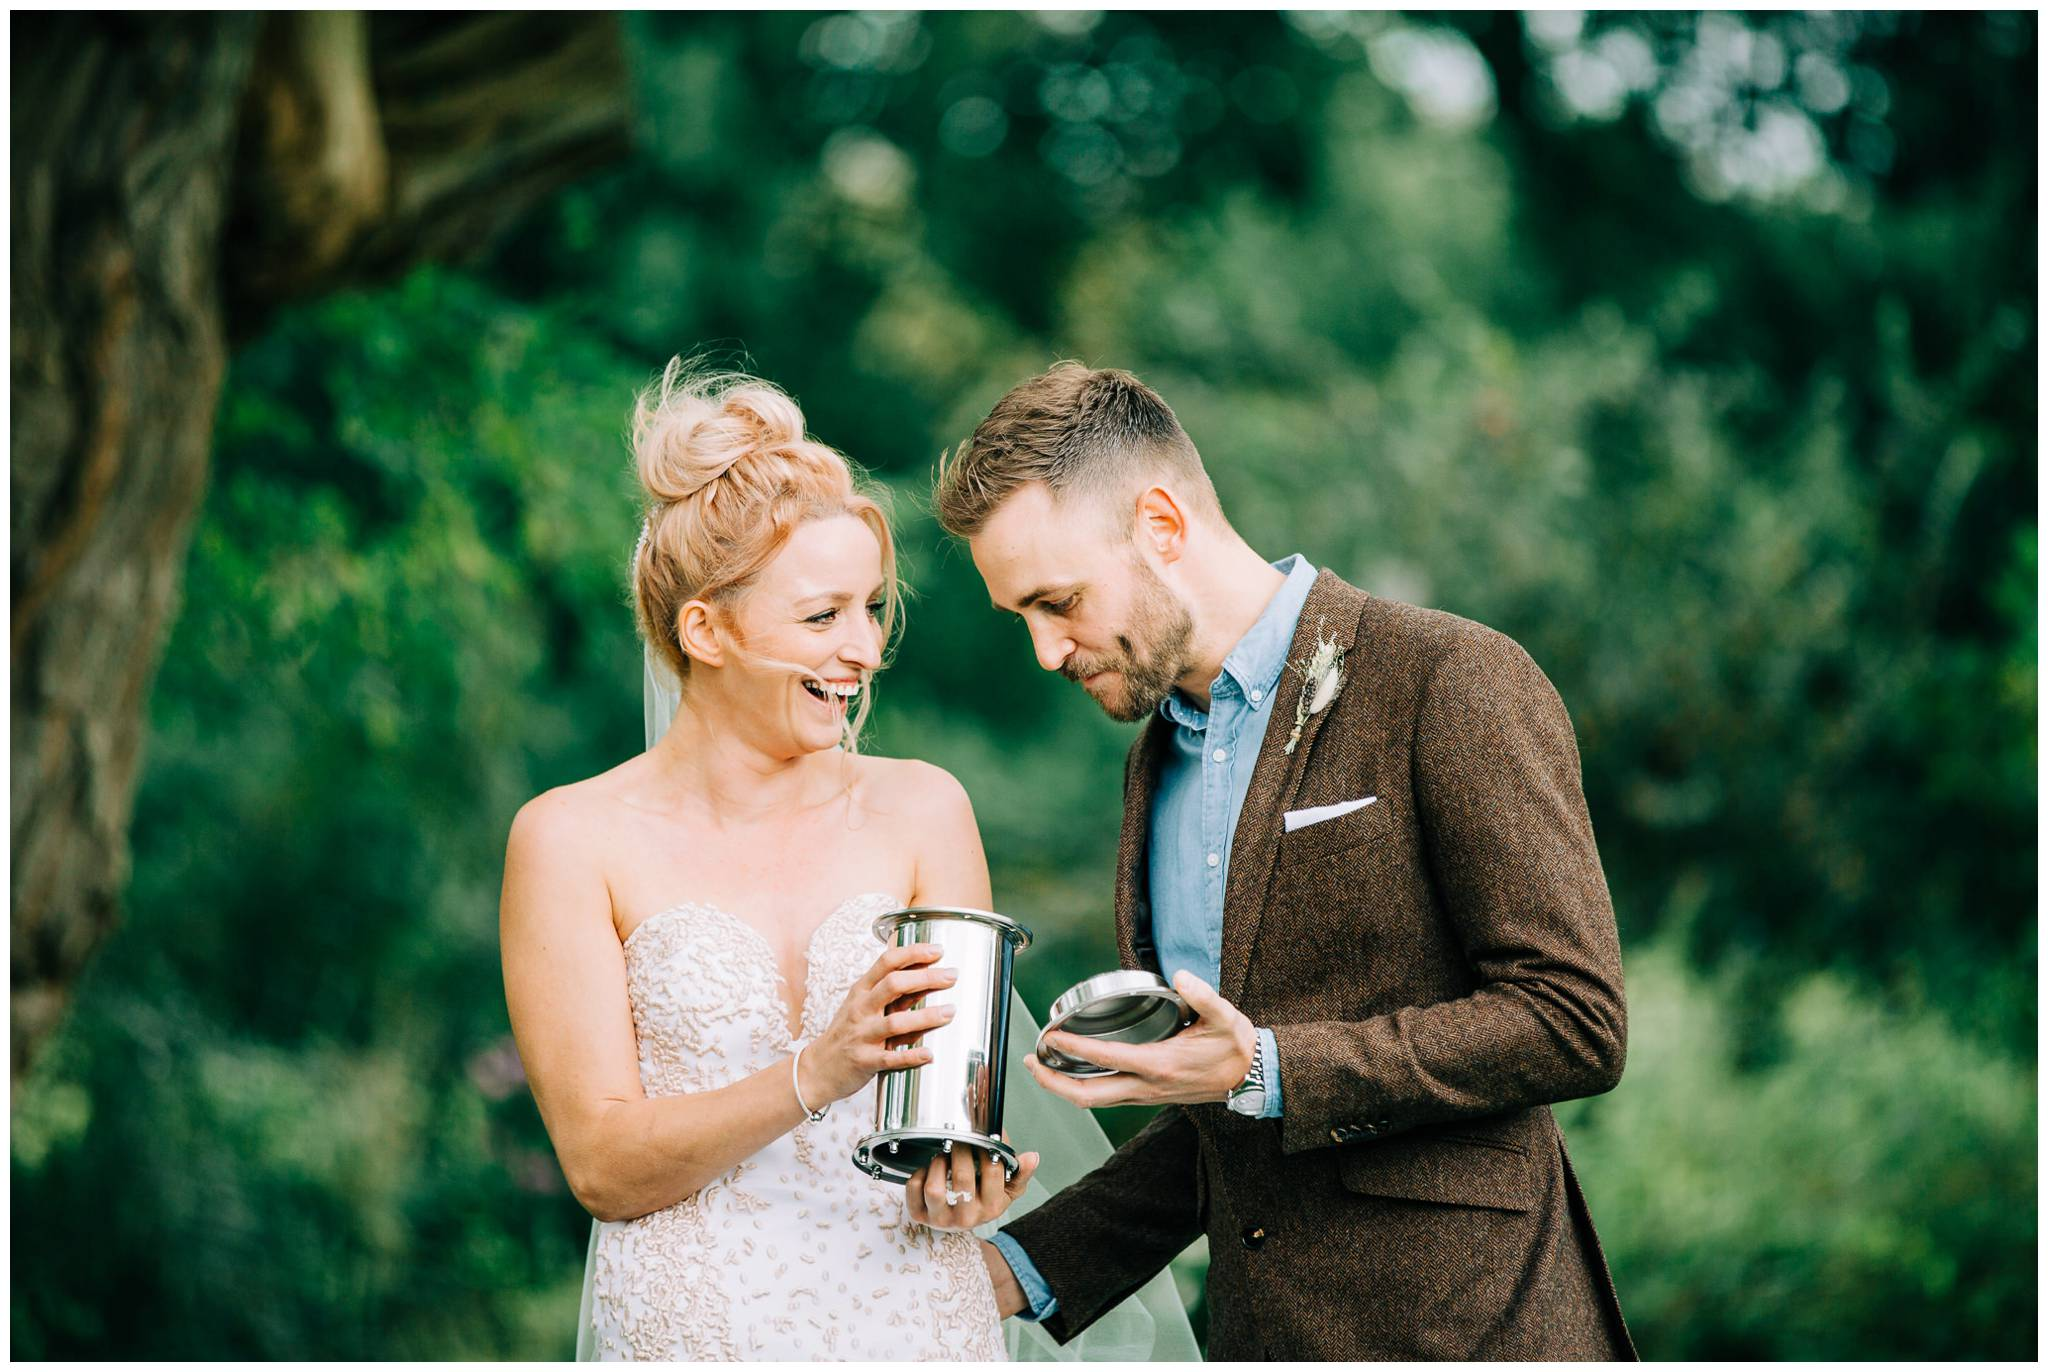 Natural wedding photography Manchester - Clare Robinson Photography_0267.jpg